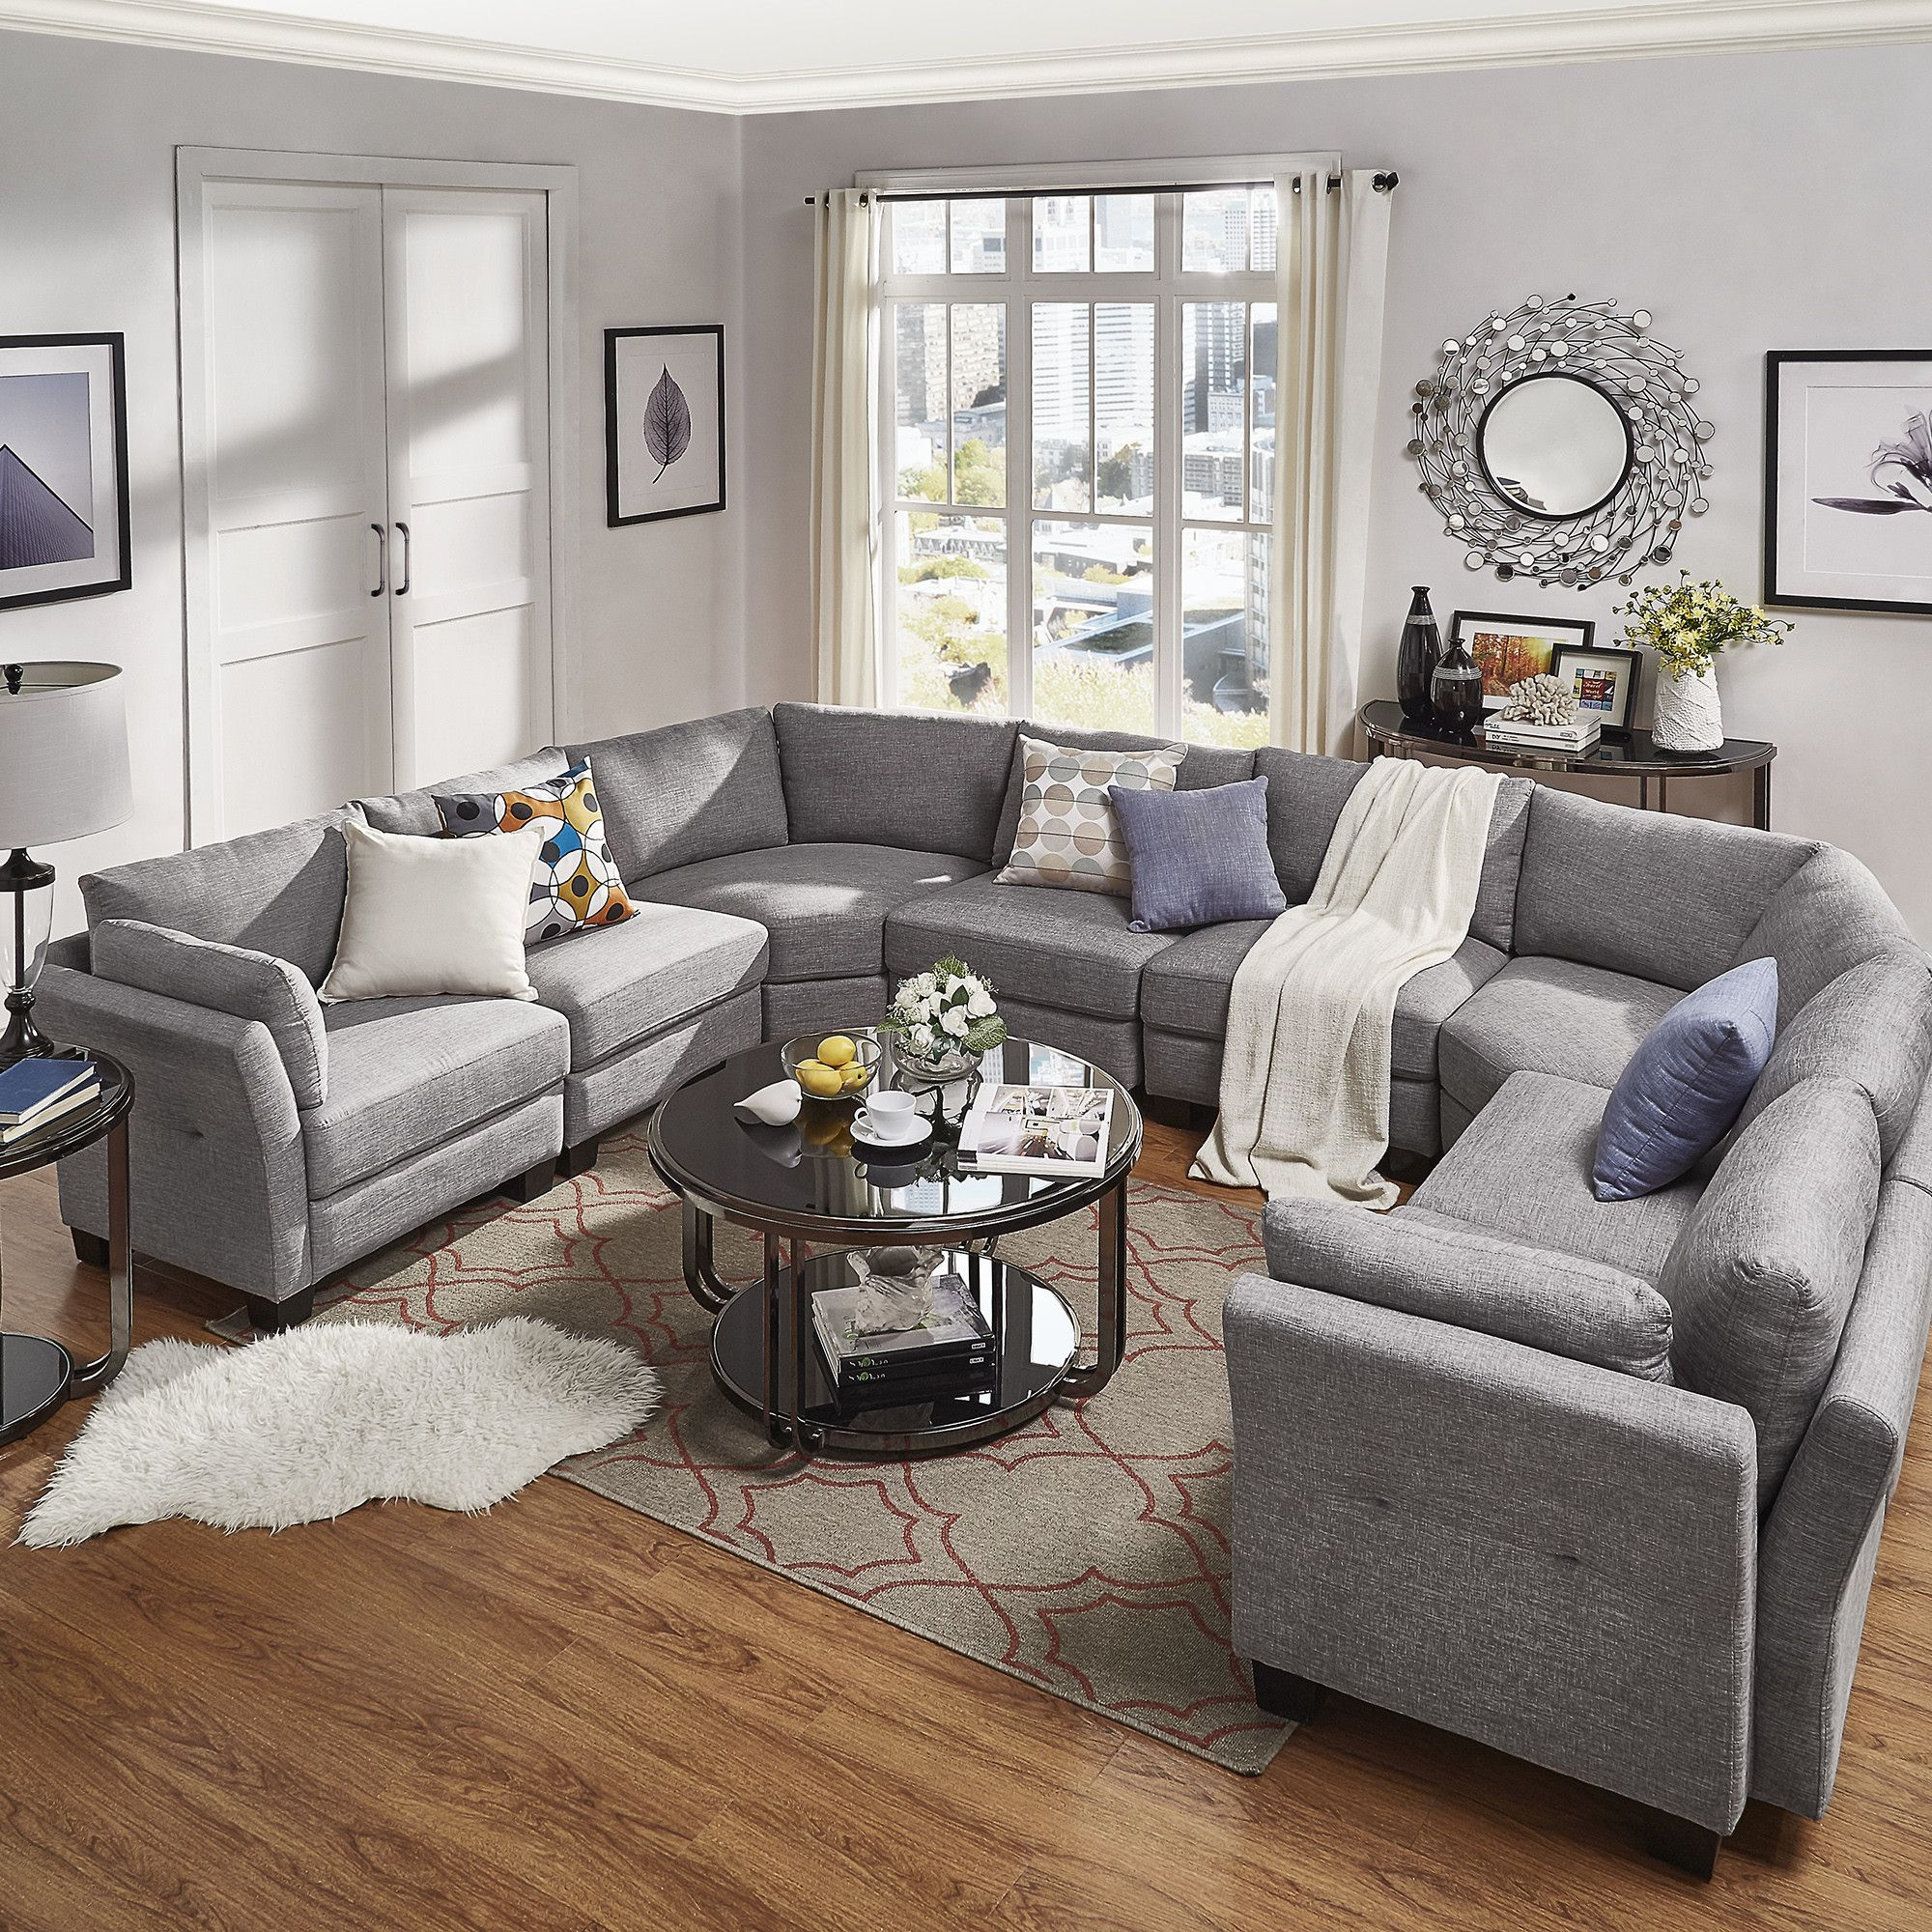 Chic Elegance Of Neutral Colors For The Living Room 10 Amazing Examples: Mercury Row Alkmene Sectional & Reviews